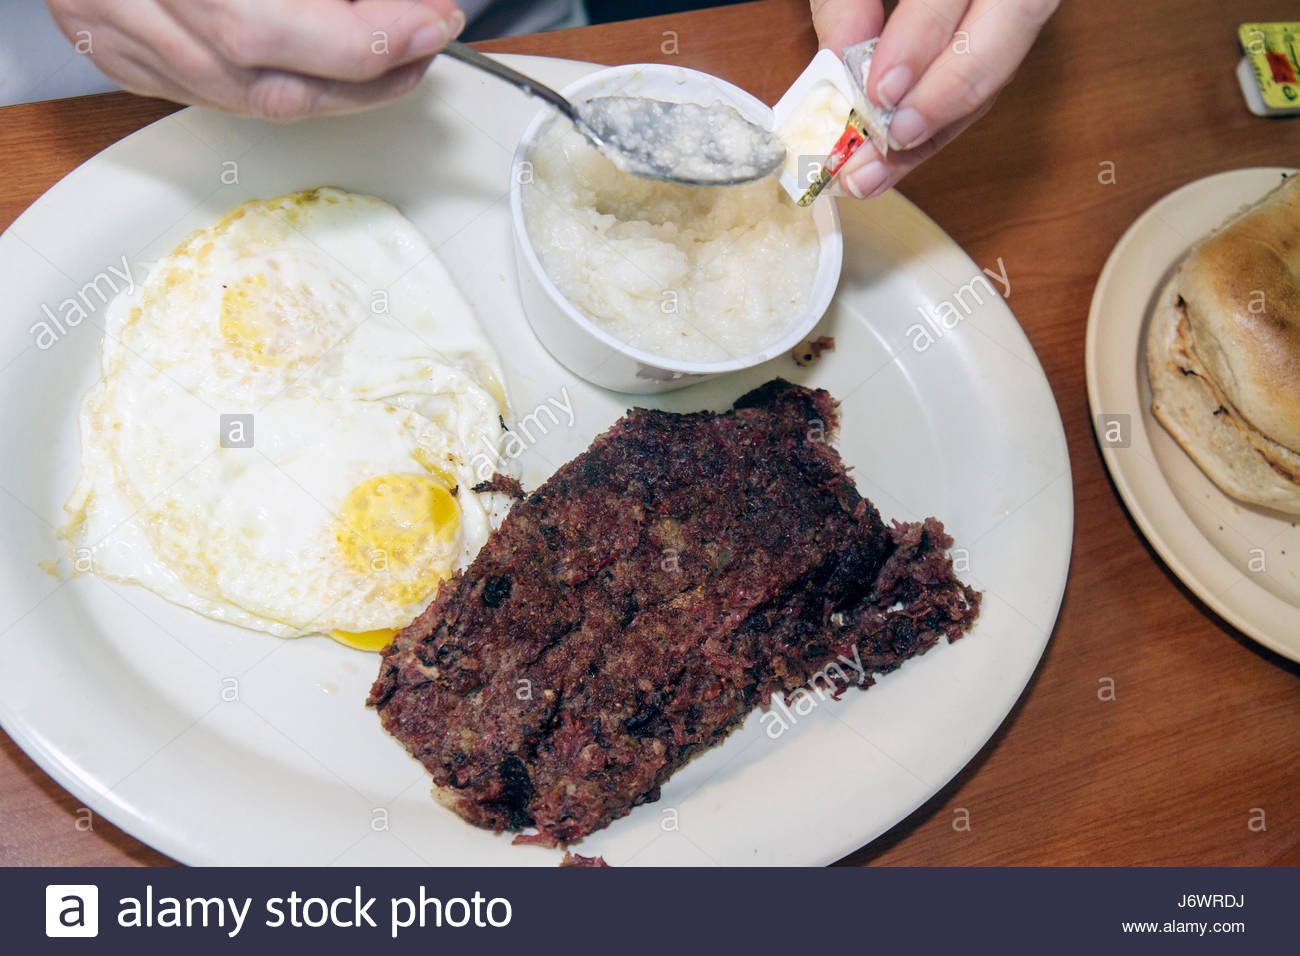 Miami Beach Florida 41st Street Roasters NY Deli restaurant food eggs grits adding butter - Stock Image